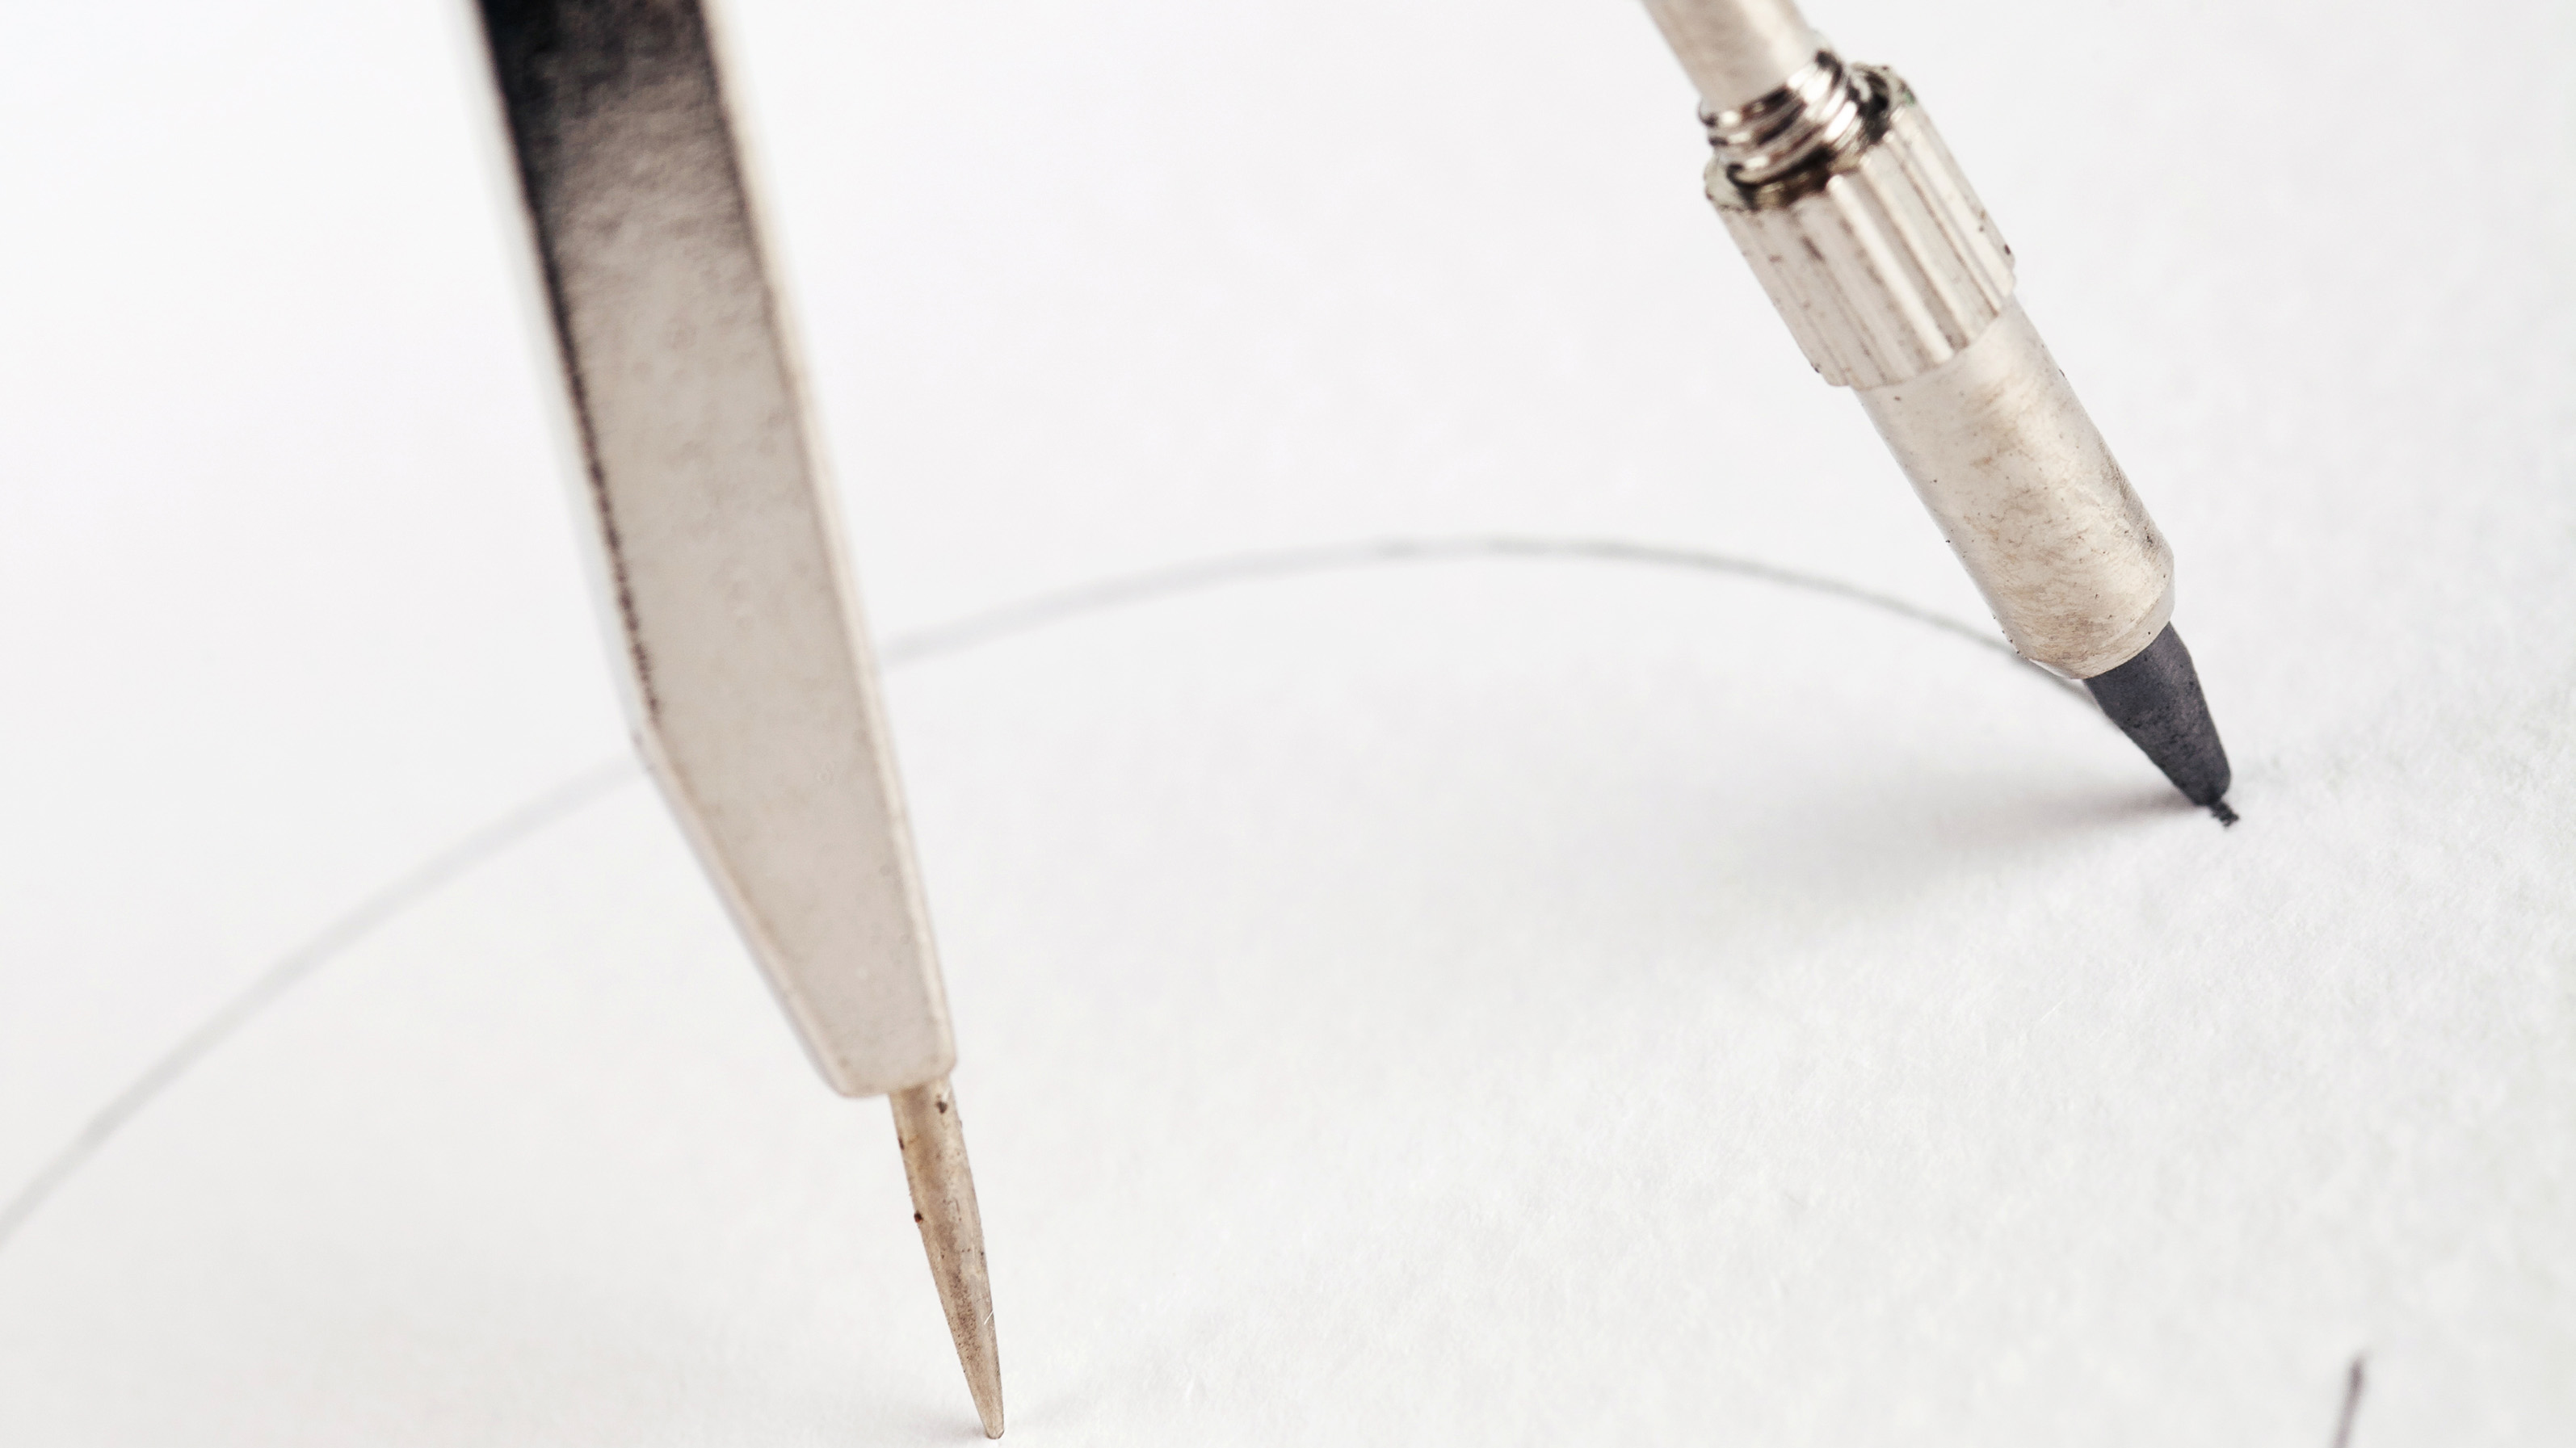 Telco network transformation in the 5G era: maximizing analytics and automation